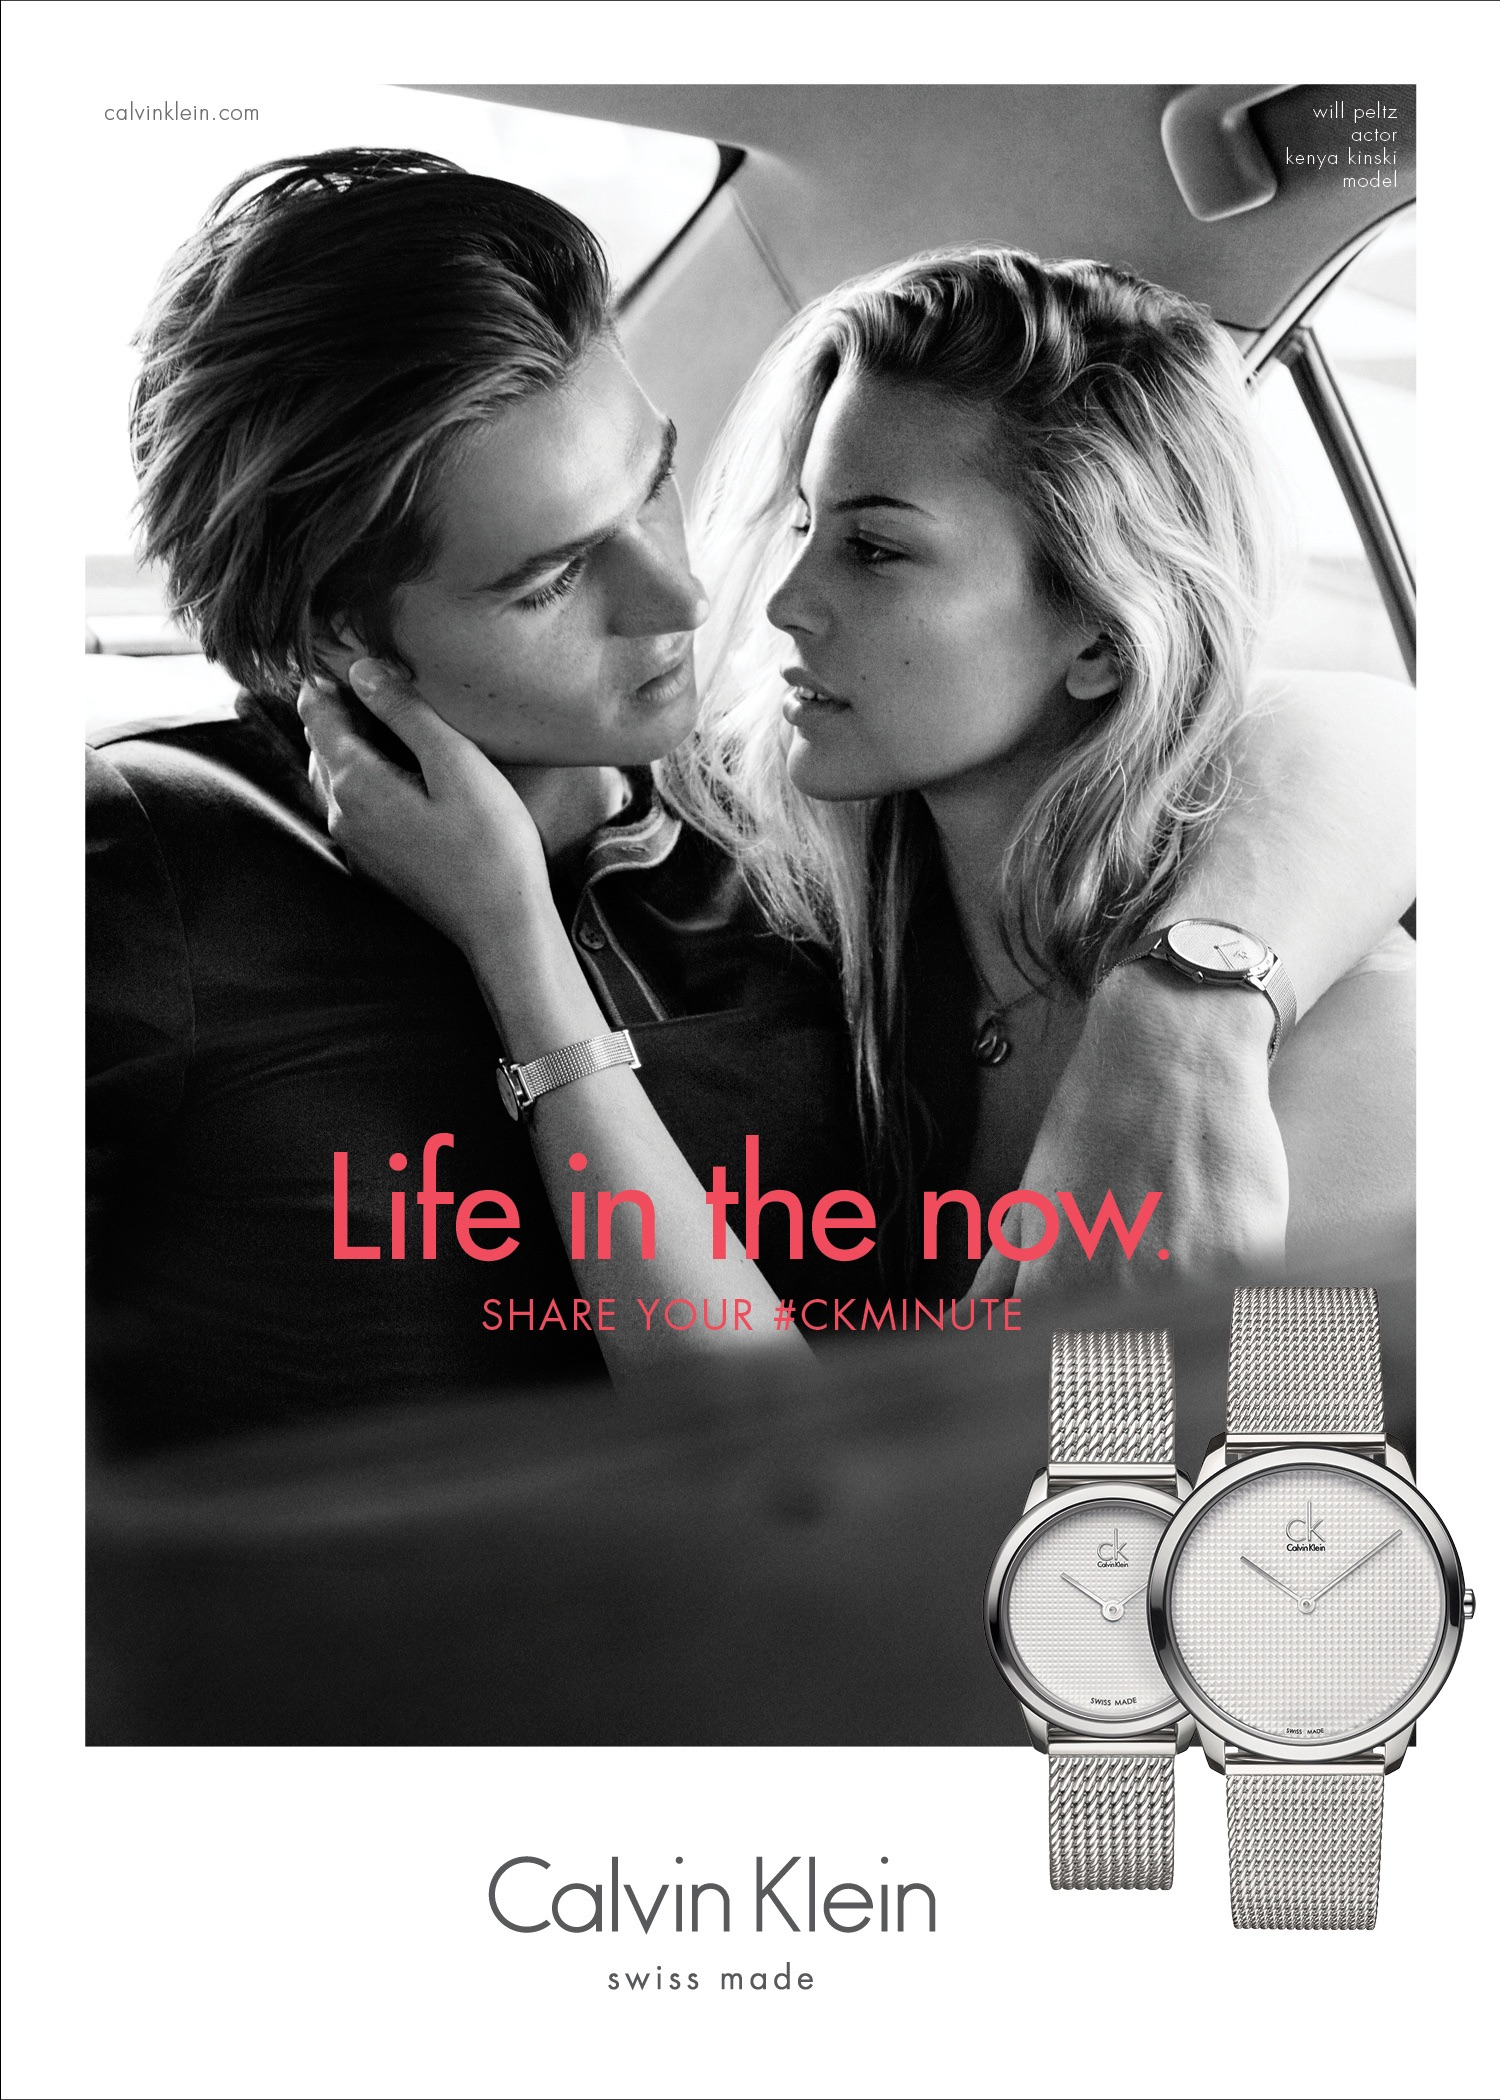 Calvin Klein Watches Takes a #CKMinute for 2016 Campaign